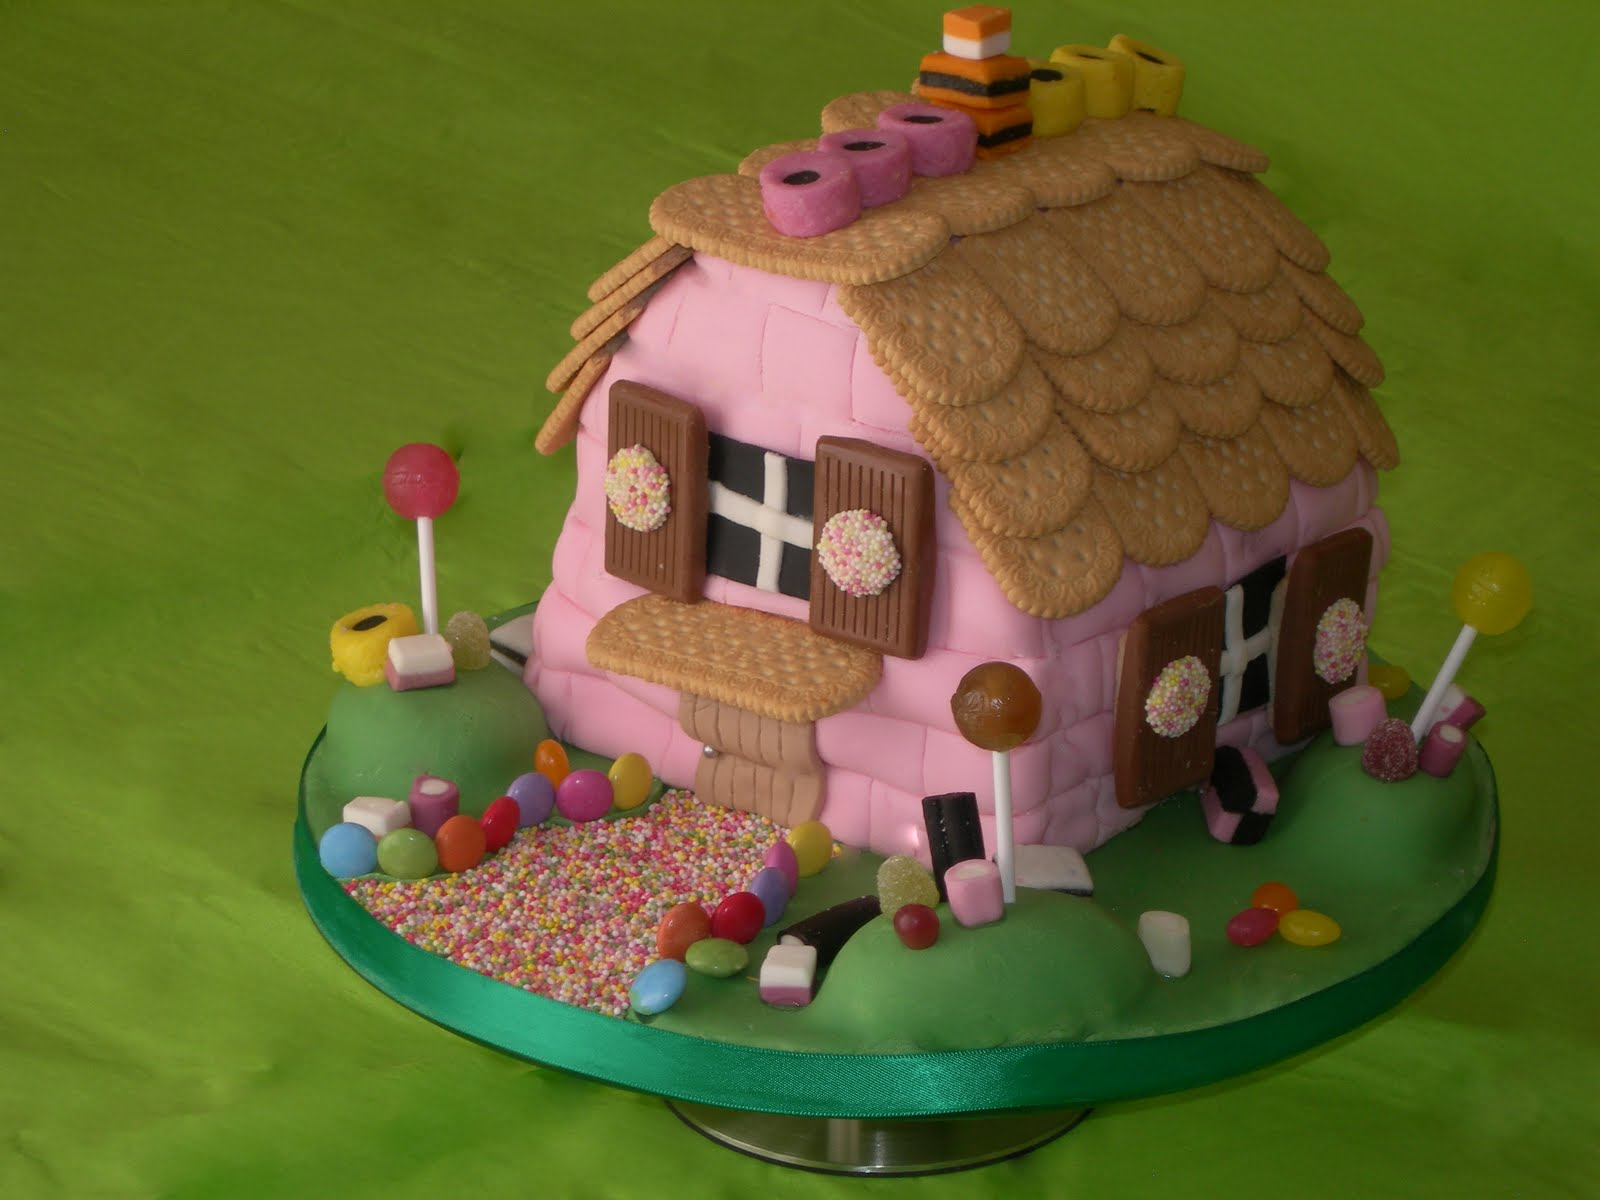 House design cake - 32 Best House Cakes Images On Pinterest House Cake Creative